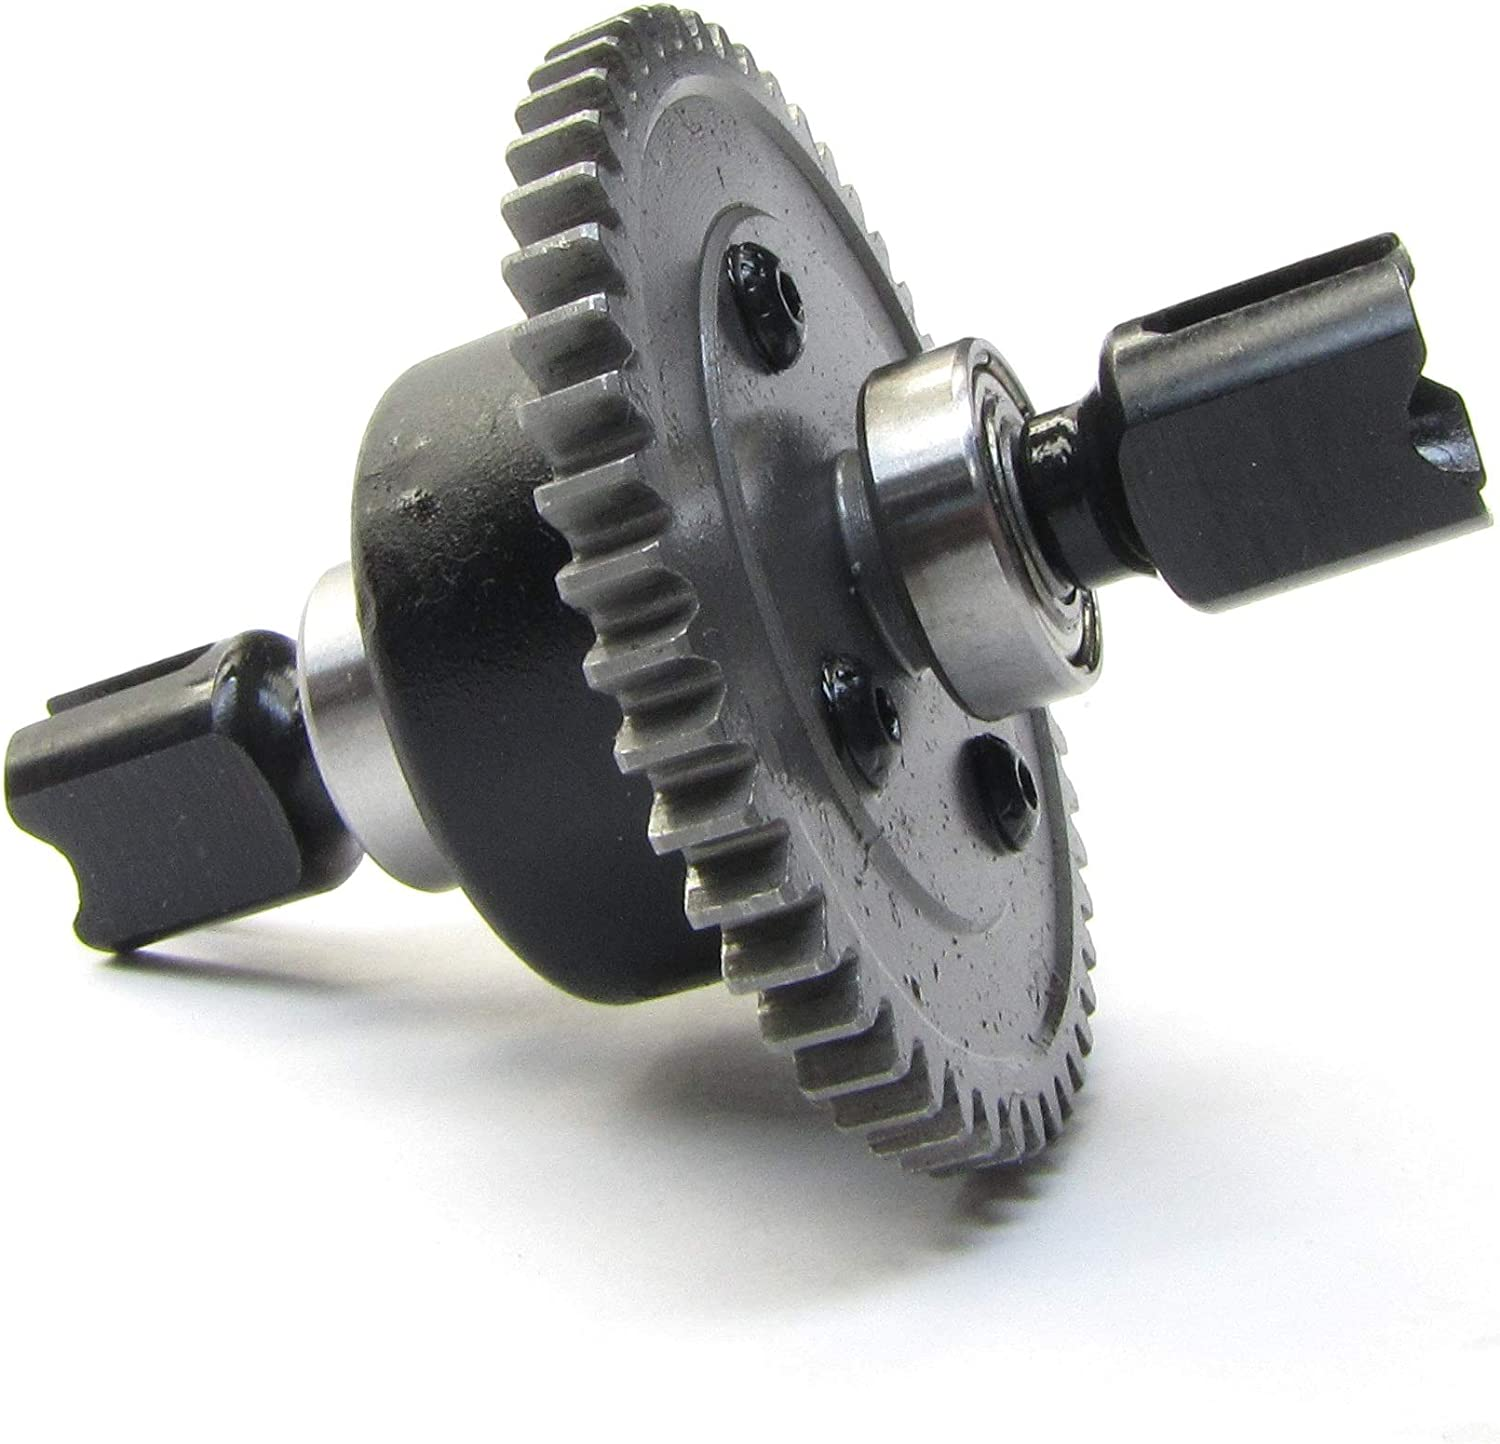 Arrma KRATON 6s BLX - Center Department store spur 50t Ta Gear diff Fort Worth Mall Differential